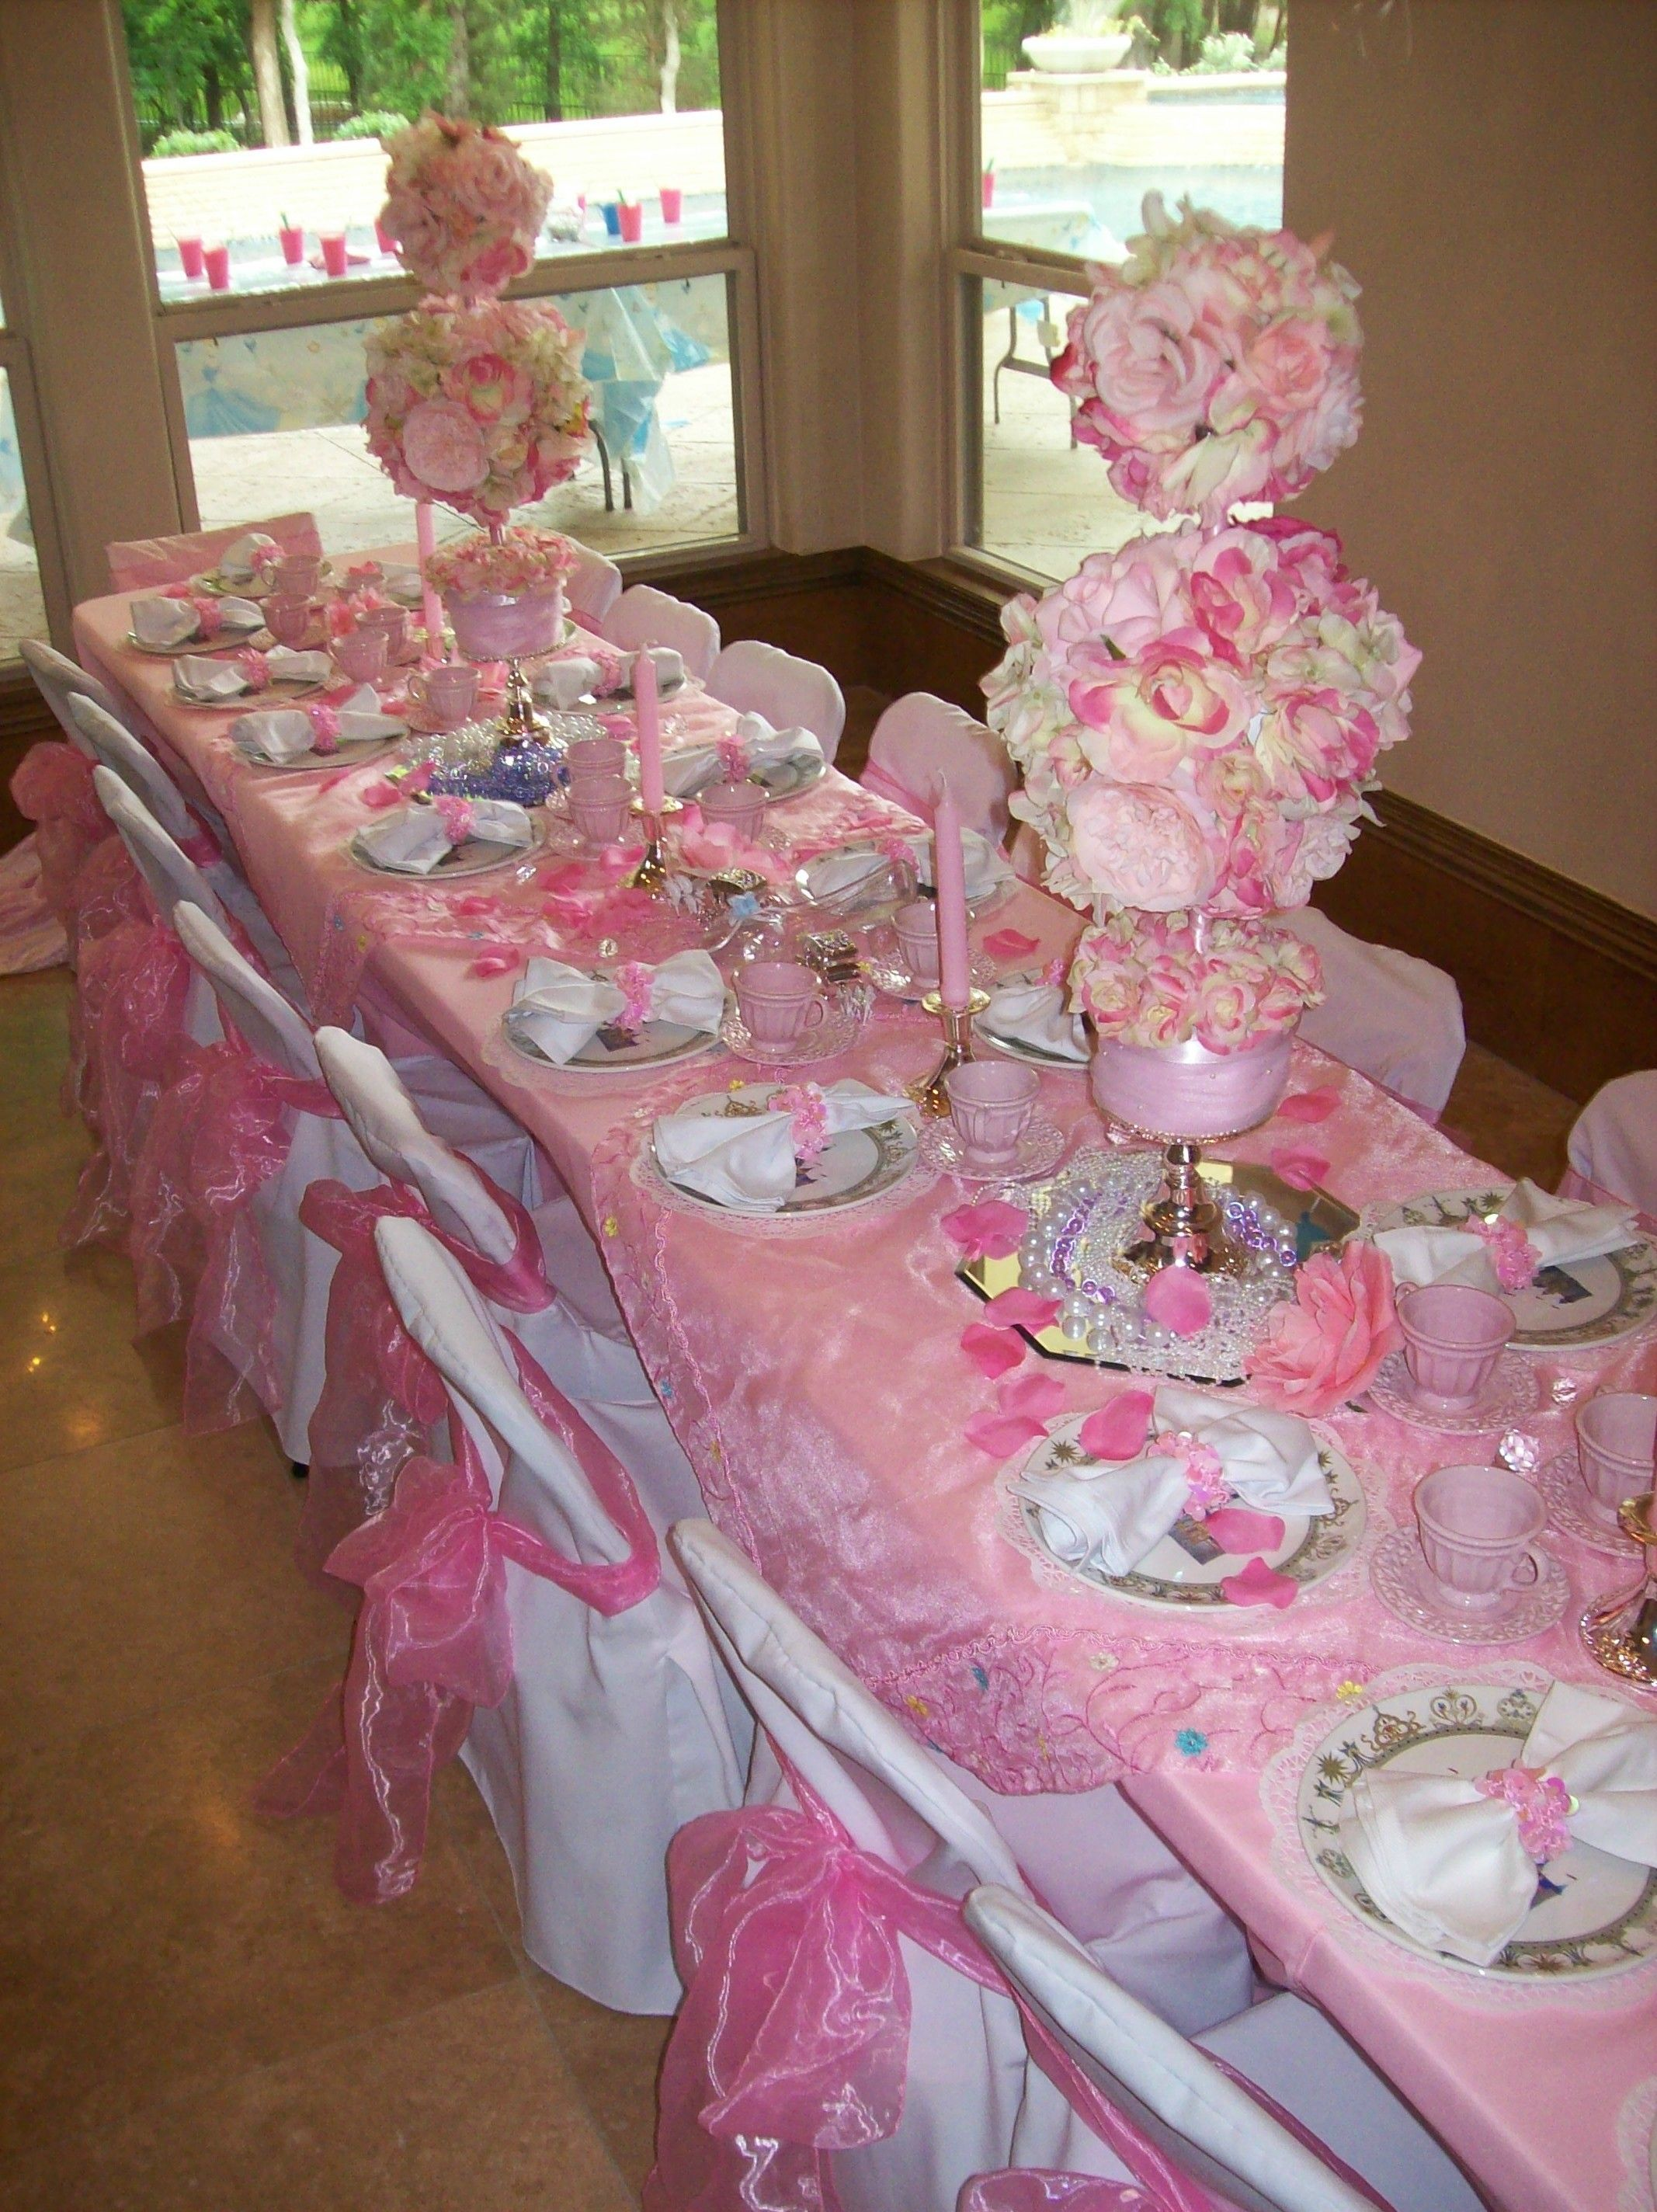 Birthday table decorations for girls - Spa Party Ideas For Girls Birthday Parties Princess Birthday Kids Child